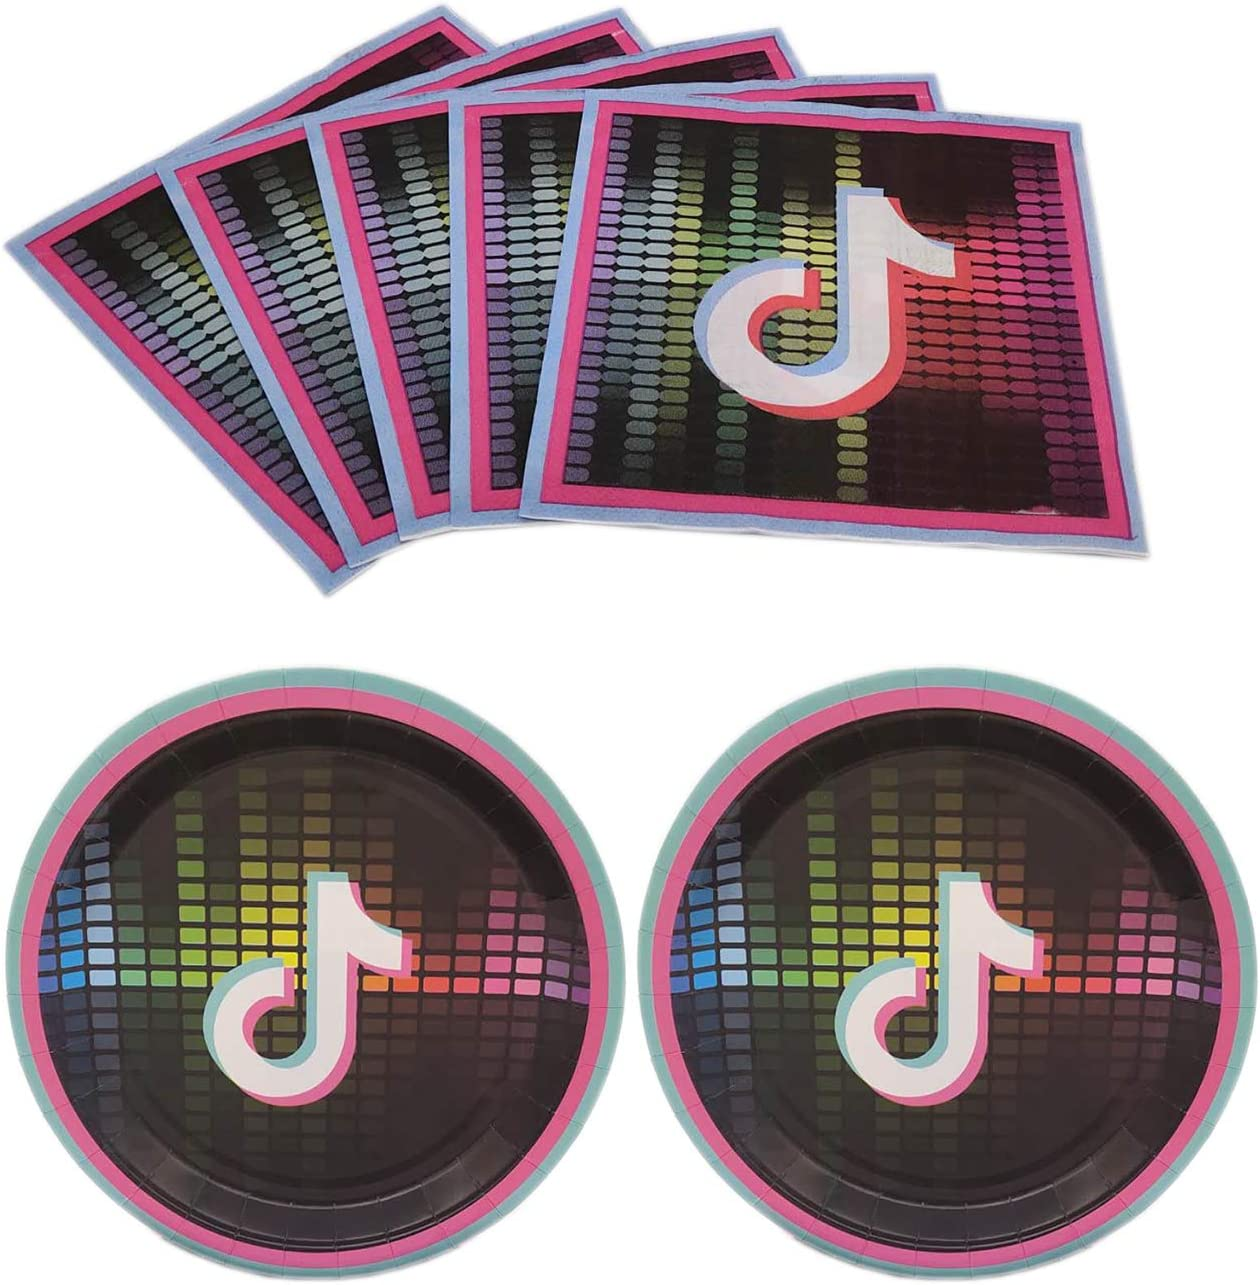 20 Guest AMZPTBOY TIK Tok Party Supplies,1 Pack TIK Tok Party Tablecloth,20 Plates,20 Napkin,Perfect for TIKTOK Music Theme Birthday Party Supplies Decoration and Baby Shower